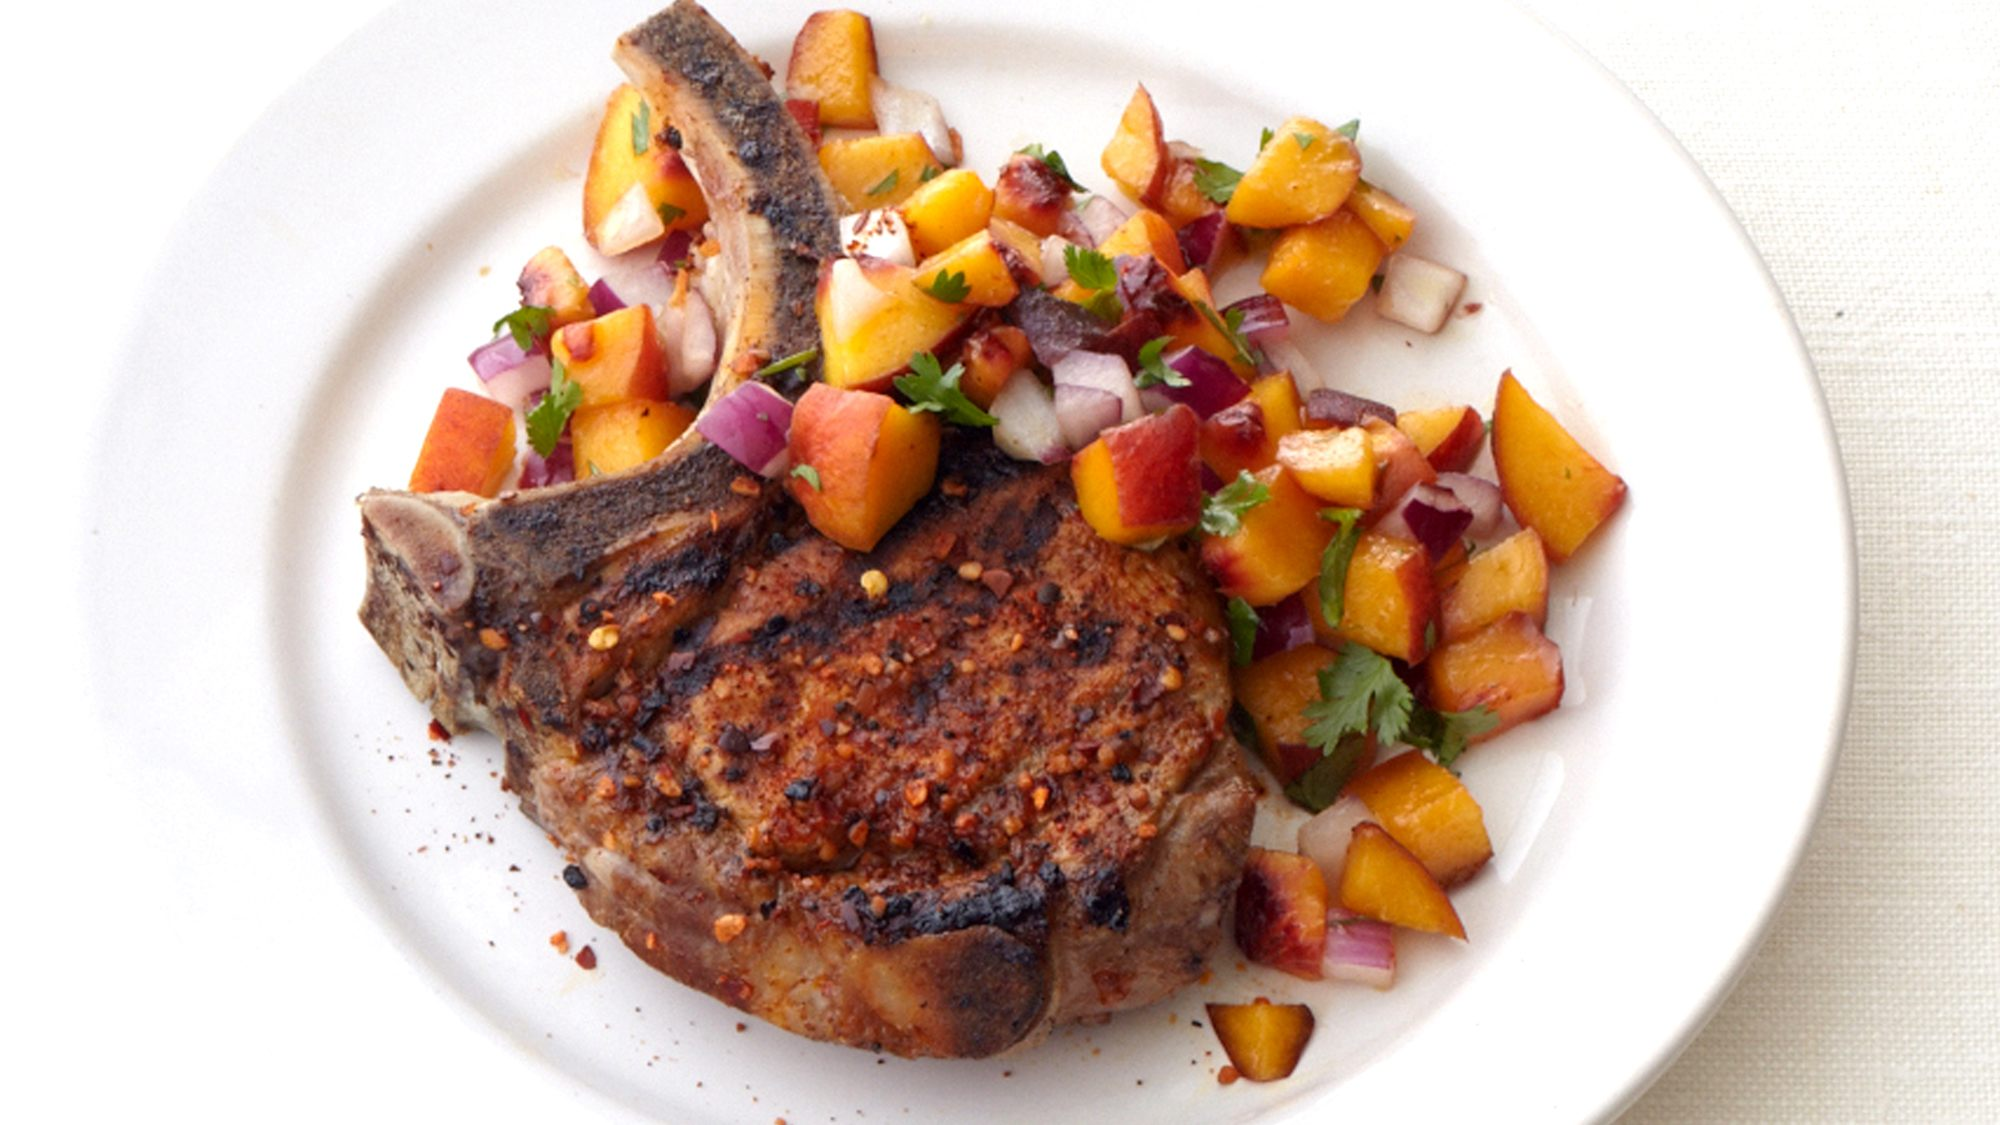 McCormick Southwestern Spiced Pork Chops with Peach Salsa